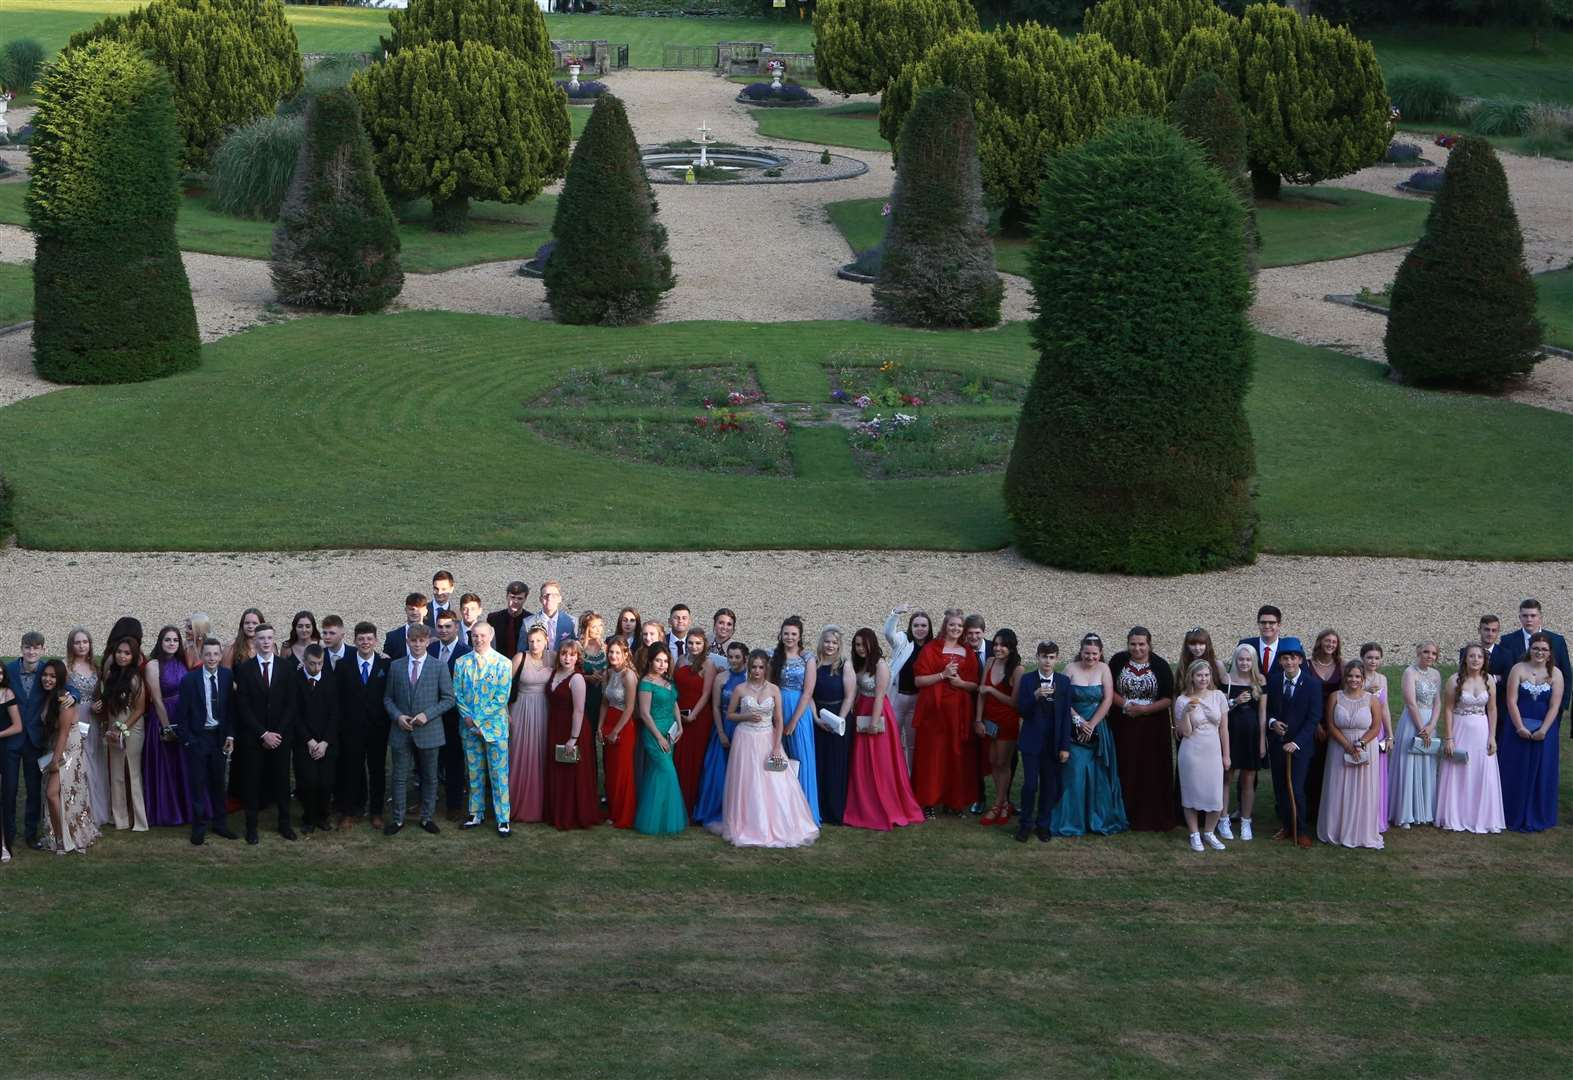 Pineapple suit, beautiful dresses, vintage cars and picturesque Lynford Hall setting for Swaffham school prom